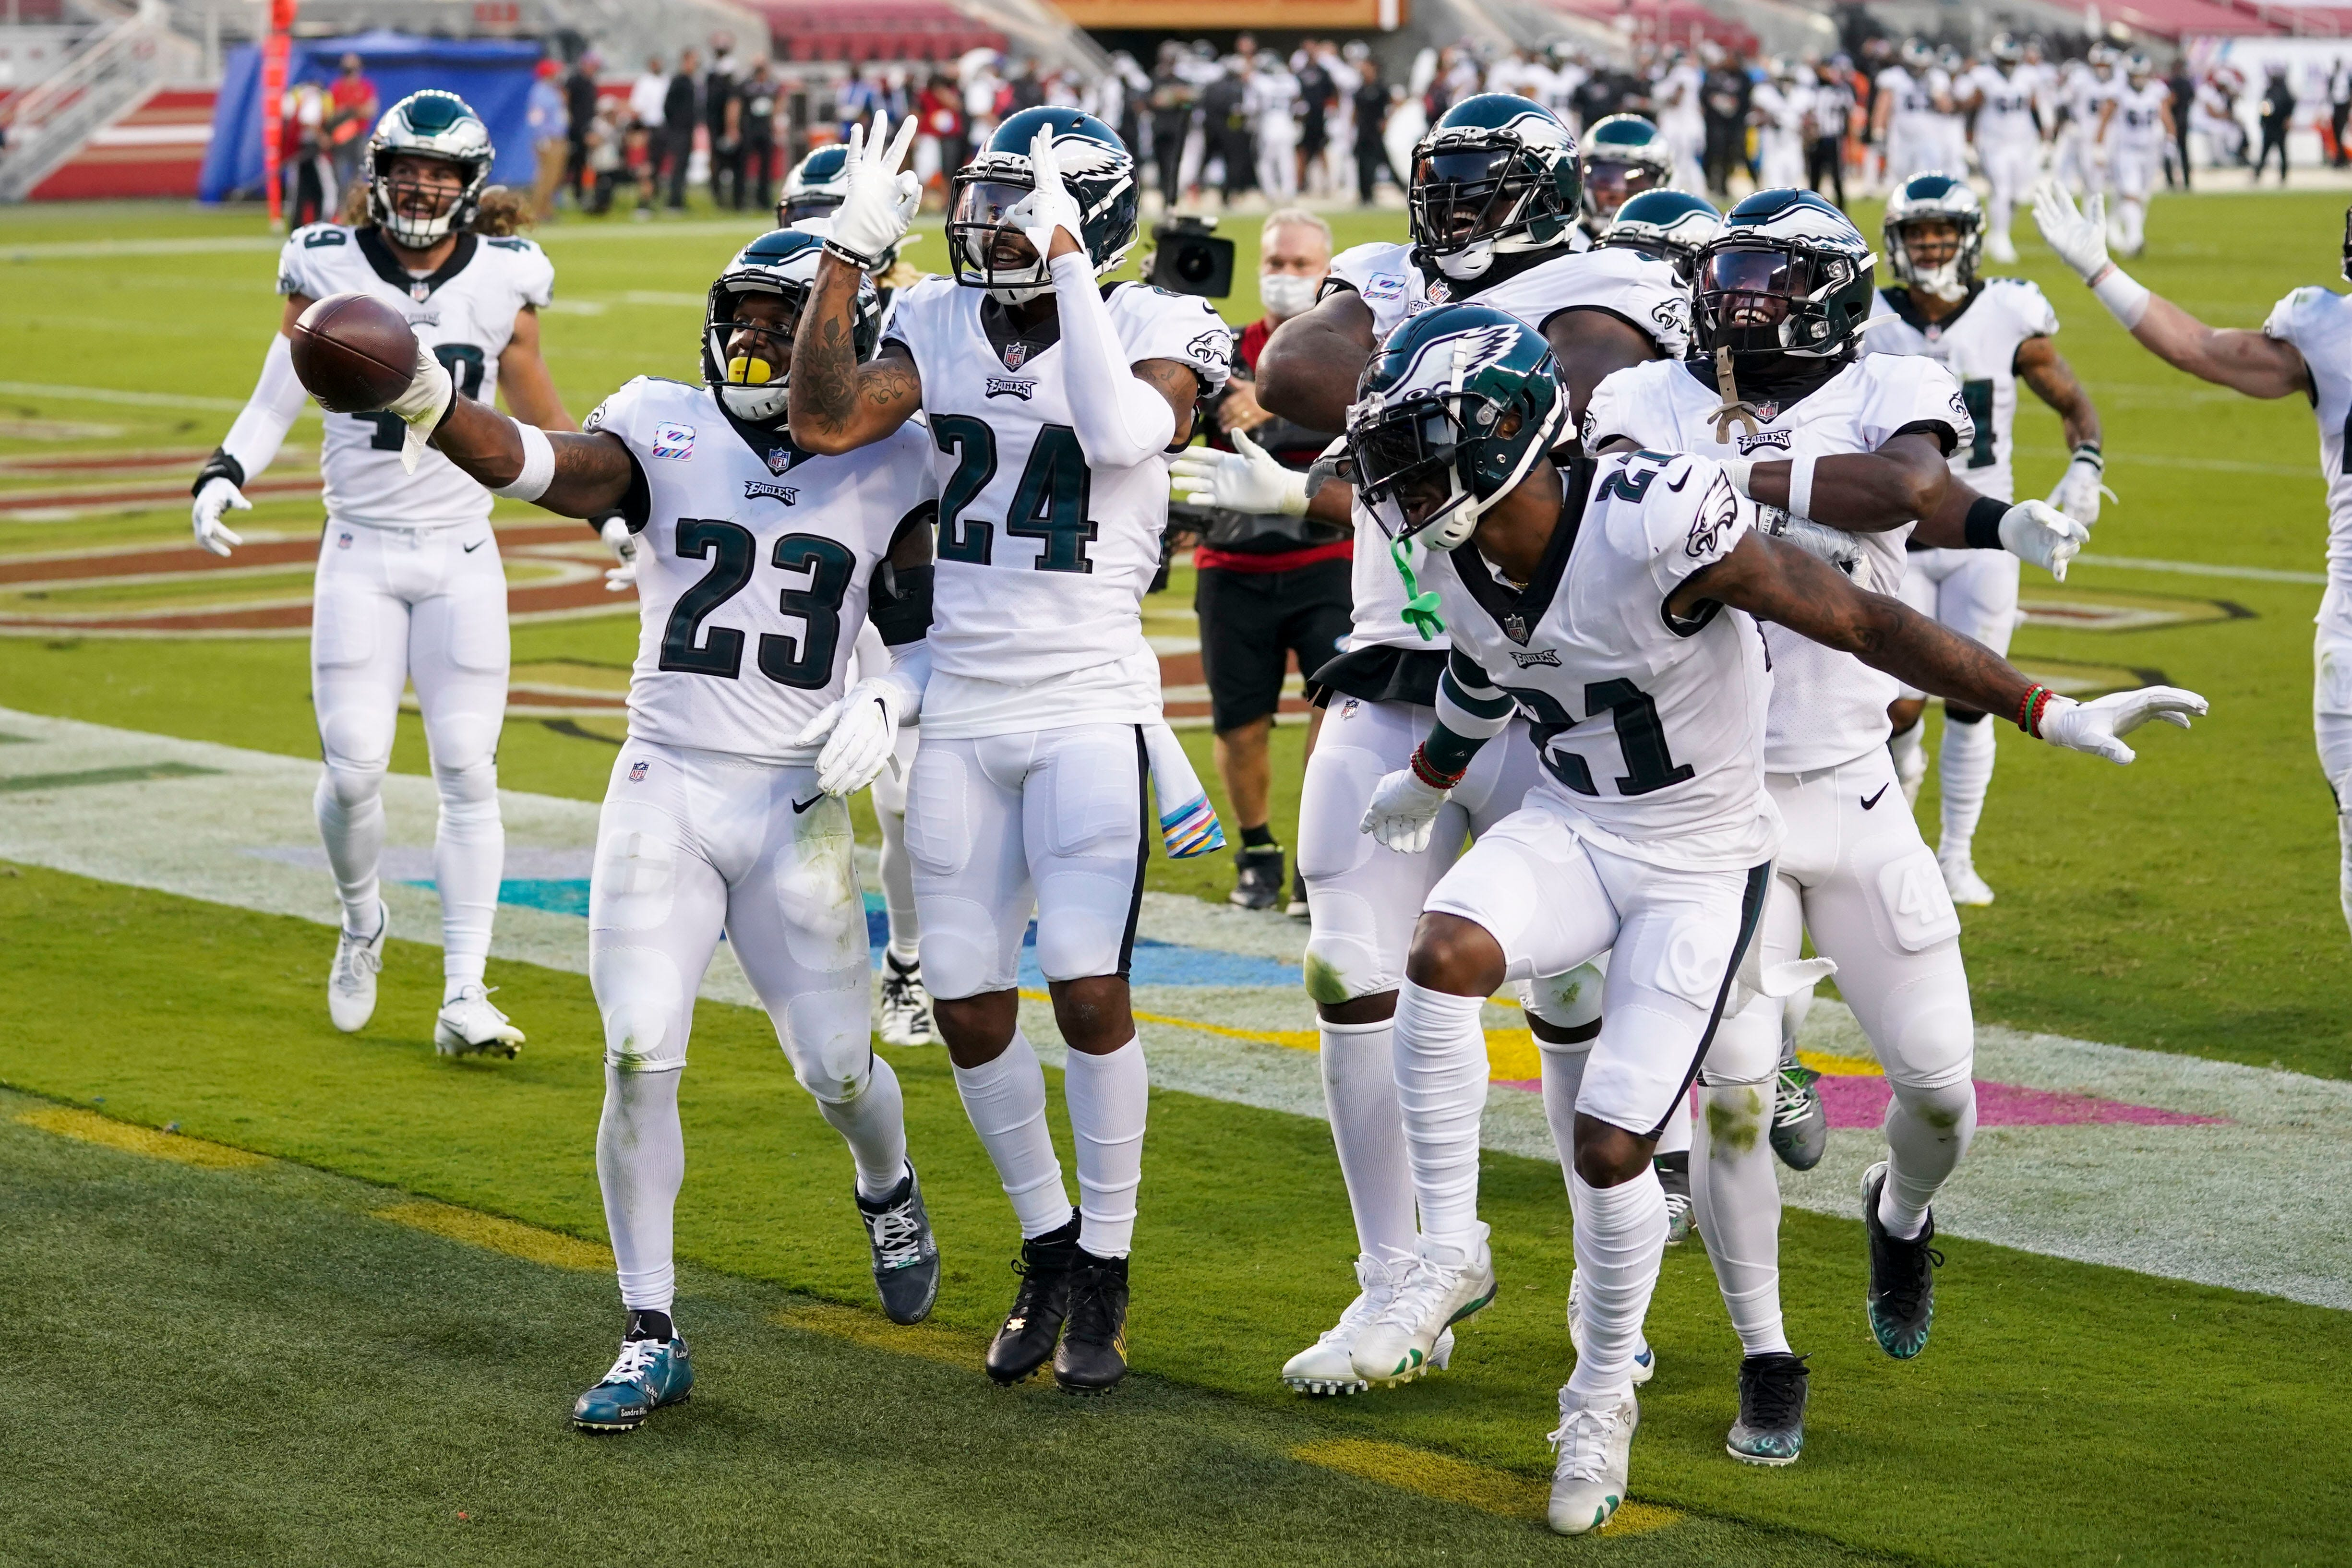 Eagles seize first win of season, NFC East lead thanks to big plays from unlikely saviors